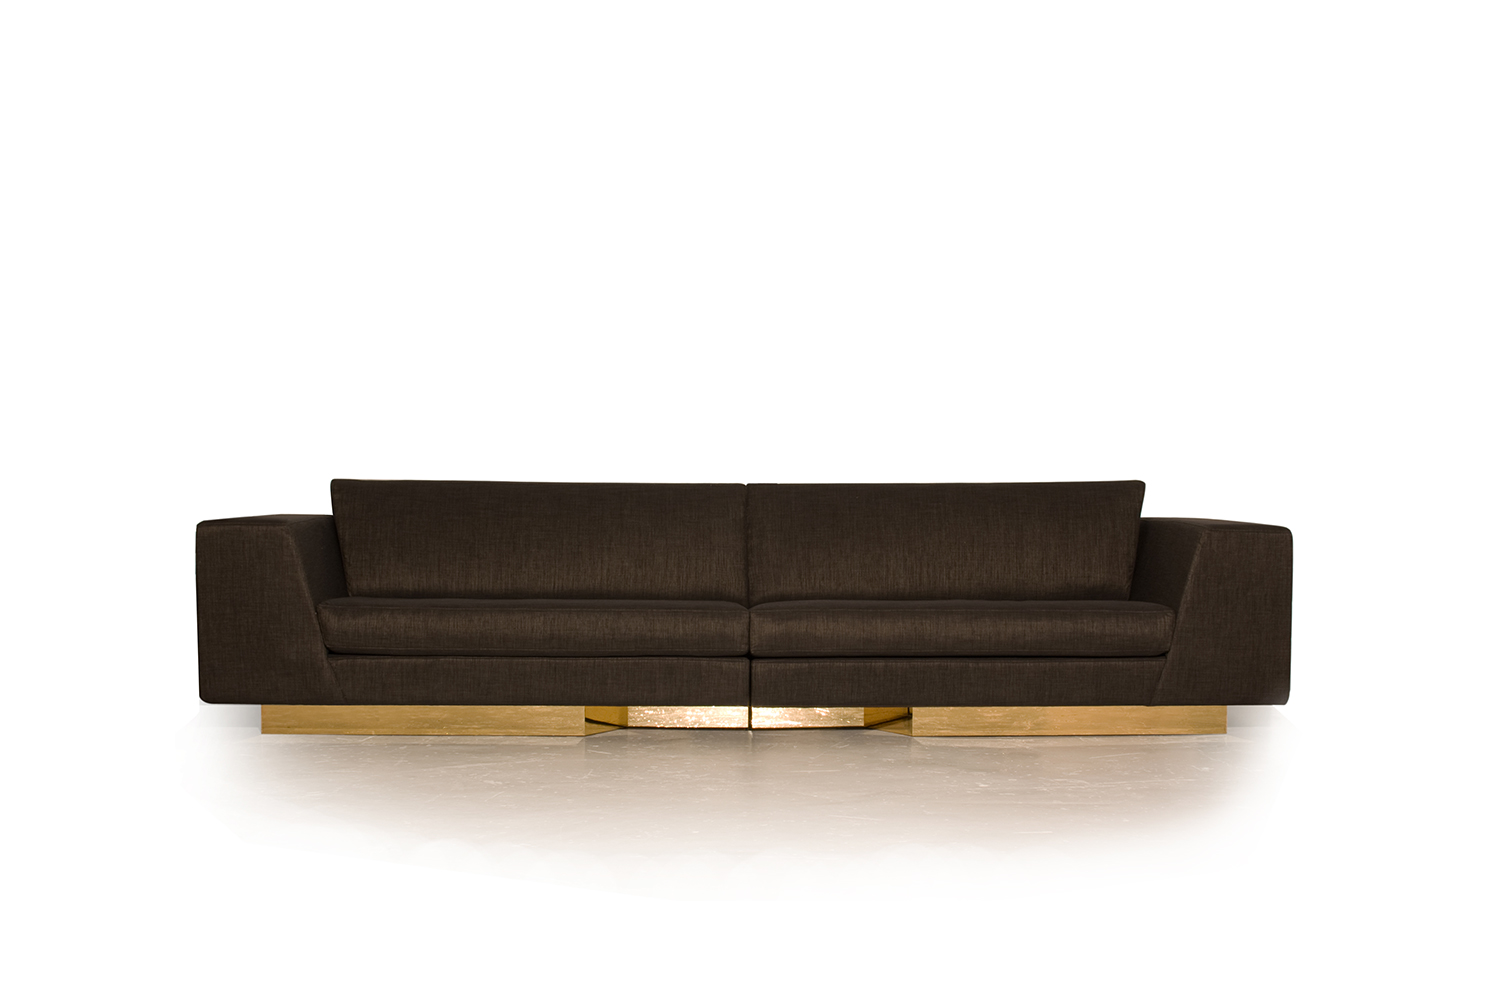 Front view of the Modular Sofa, adjustable in 5 places. Recessed base in gold-plated metal veneer, Italian fabric from Kvadrat with gold thread.